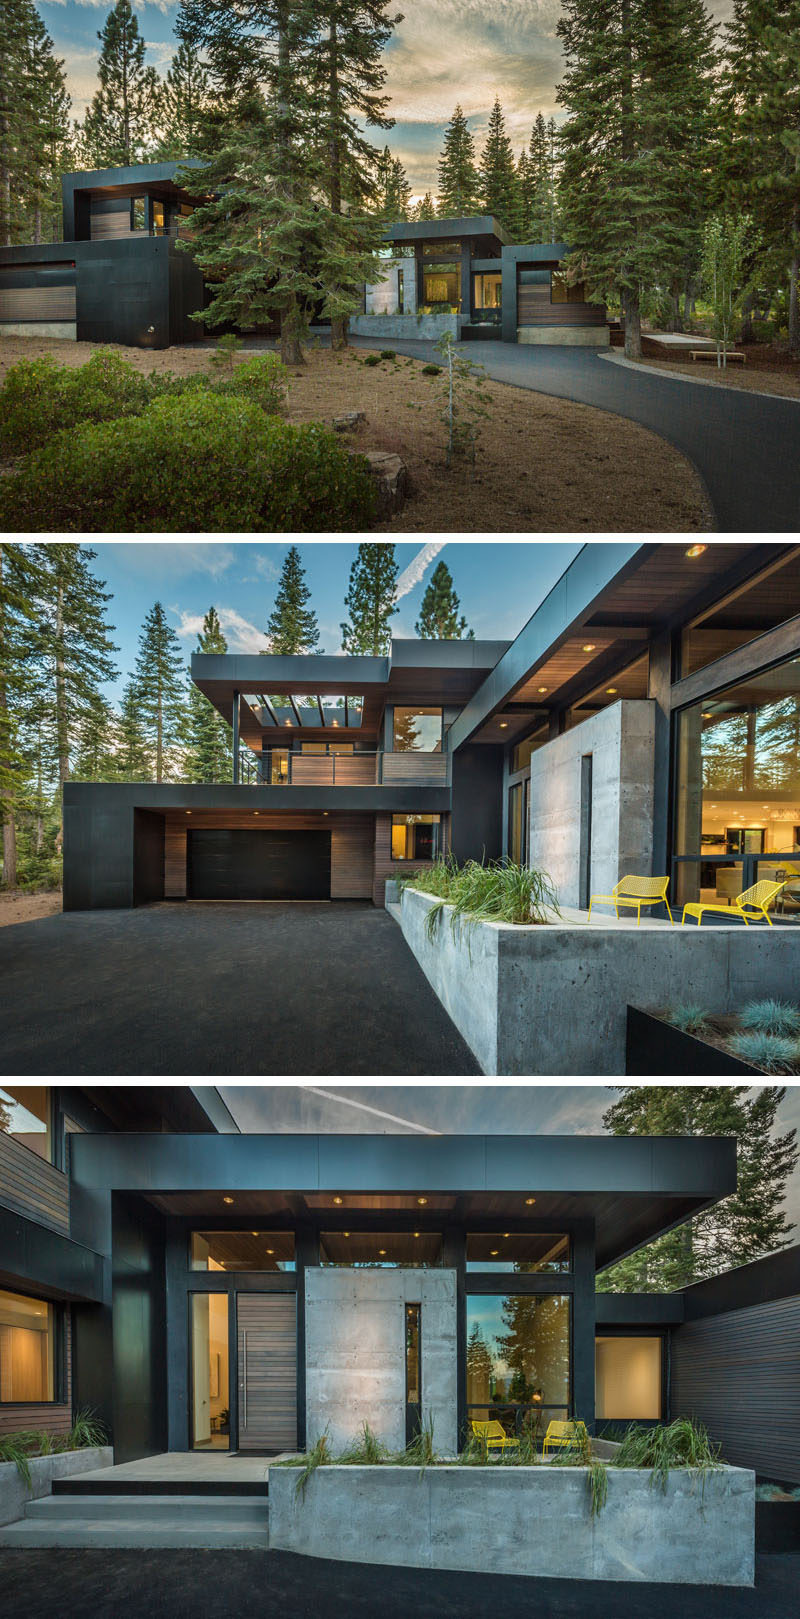 World's Most Beautiful Homes New 18 Modern Houses In the forest